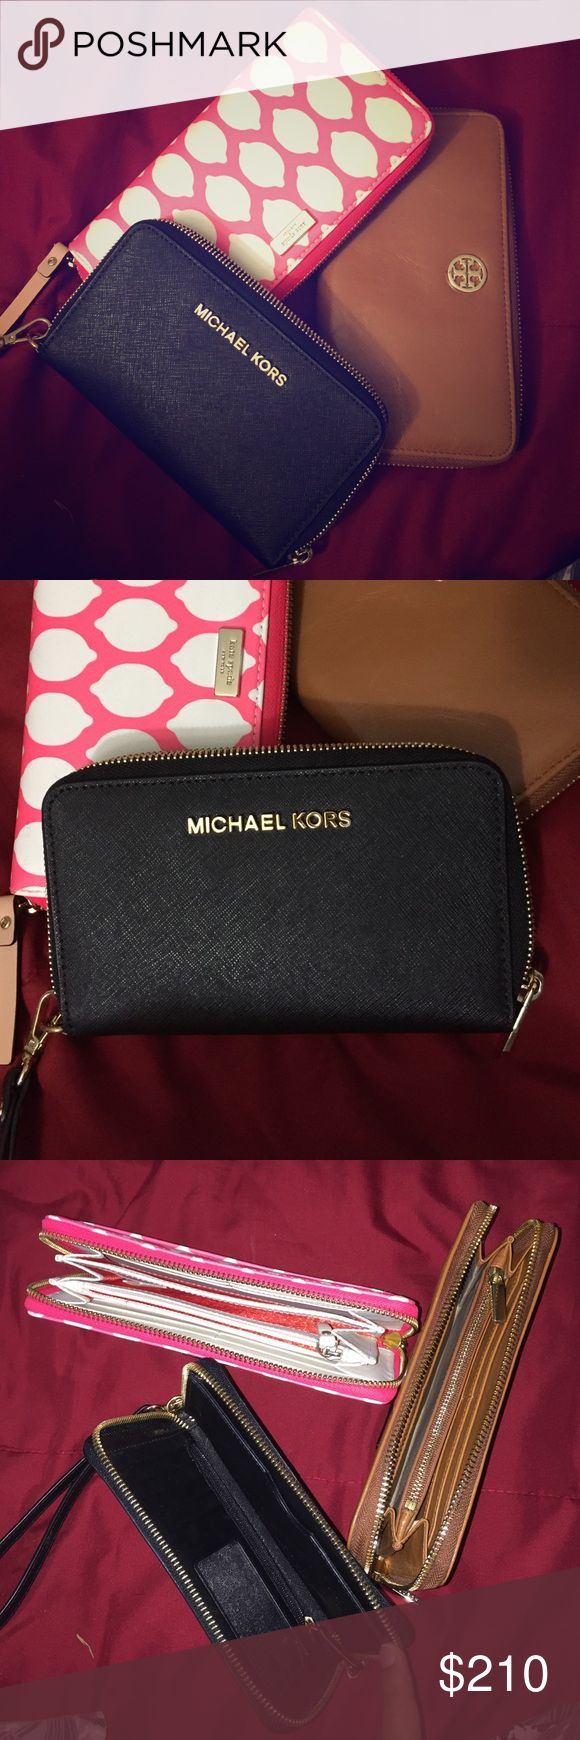 ‼️Three Brand Wallets‼️Tory/Kate Spade/MK😍😍 Tory Burch - brown Continental Wallet with many pockets //// Kate Spade - Pink wallet with Red and Cream Interiors with many pockets//MK - Black Wallet with many pockets and great interiors! they all are like new - Pre-owned used once or twice Tory Burch Bags Wallets